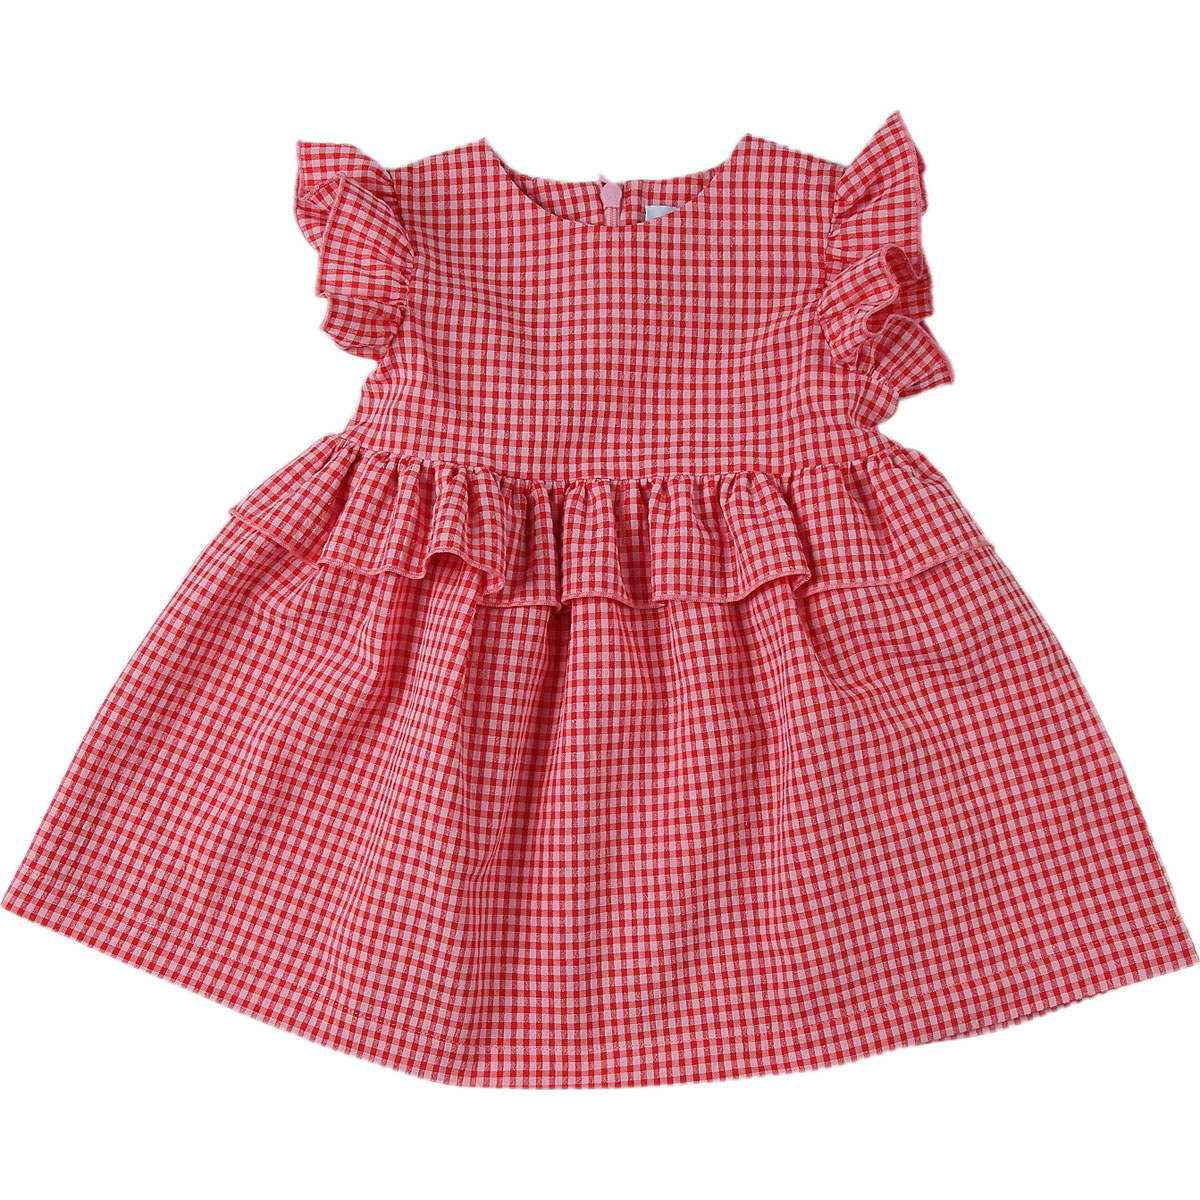 Le Petit Coco Baby Dress for Girls On Sale, Red, Cotton, 2019, 12M 18M 2Y 3M 6M